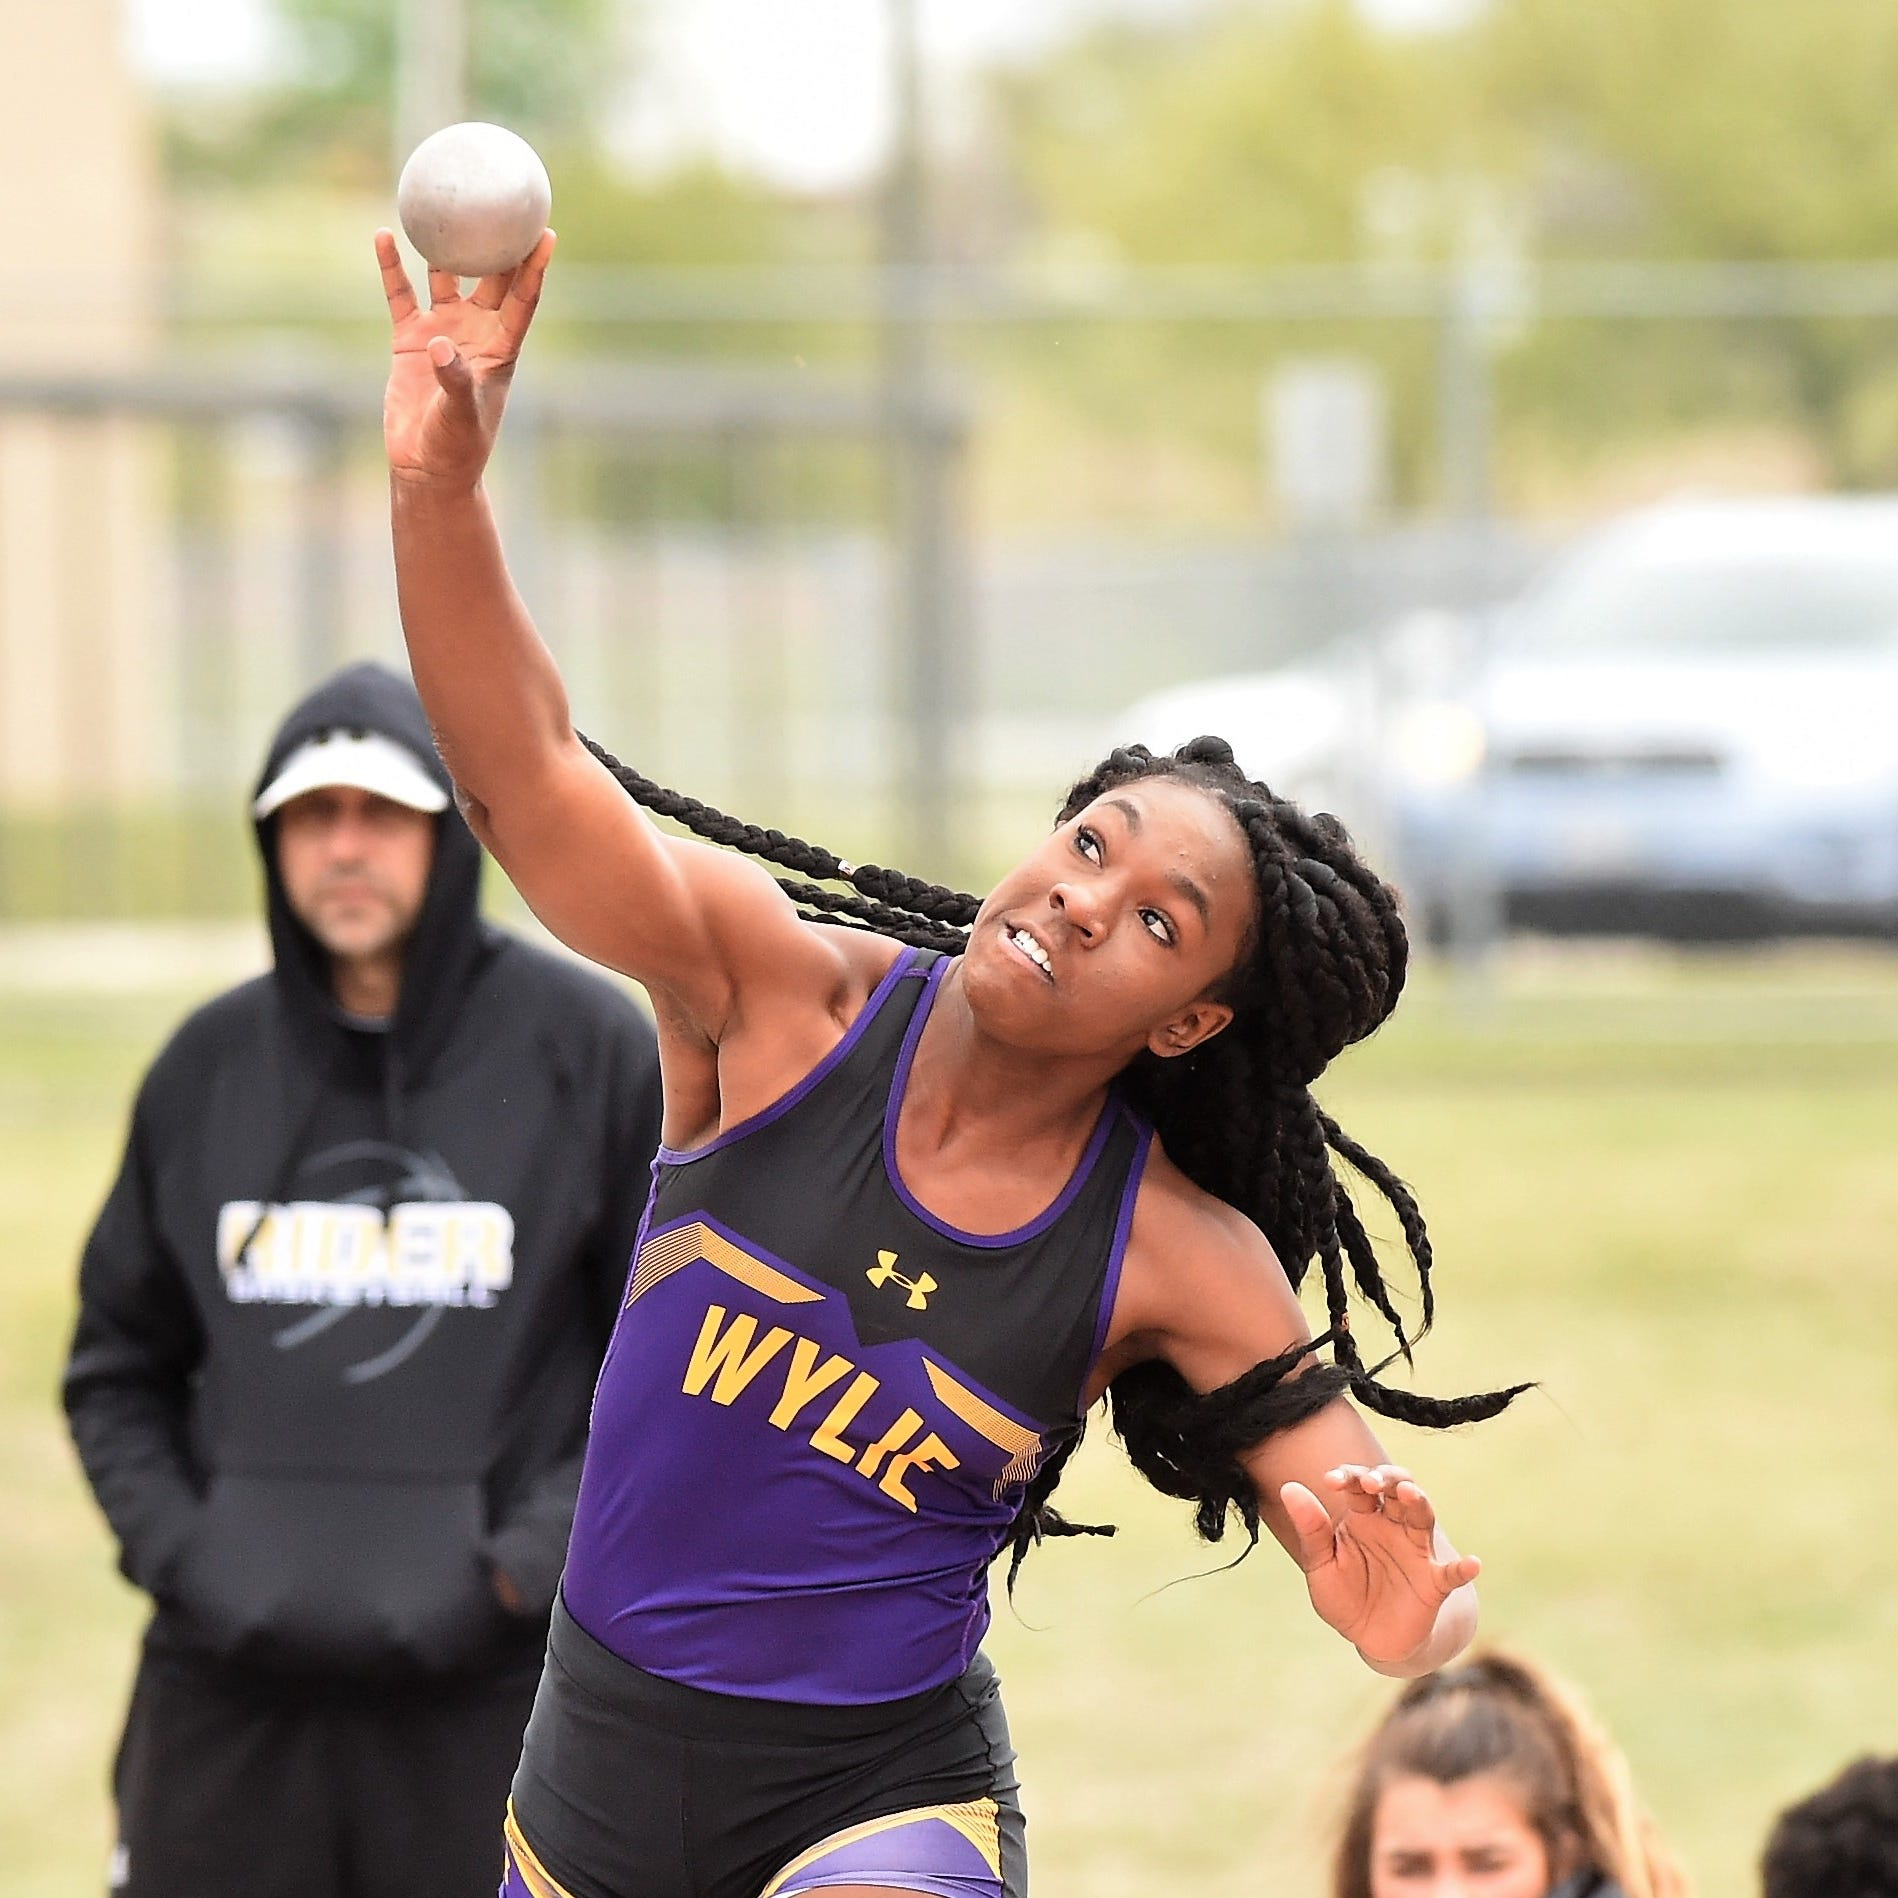 Collins, Grant lead Abilene Wylie girls track and field on first day of District 4-5A meet